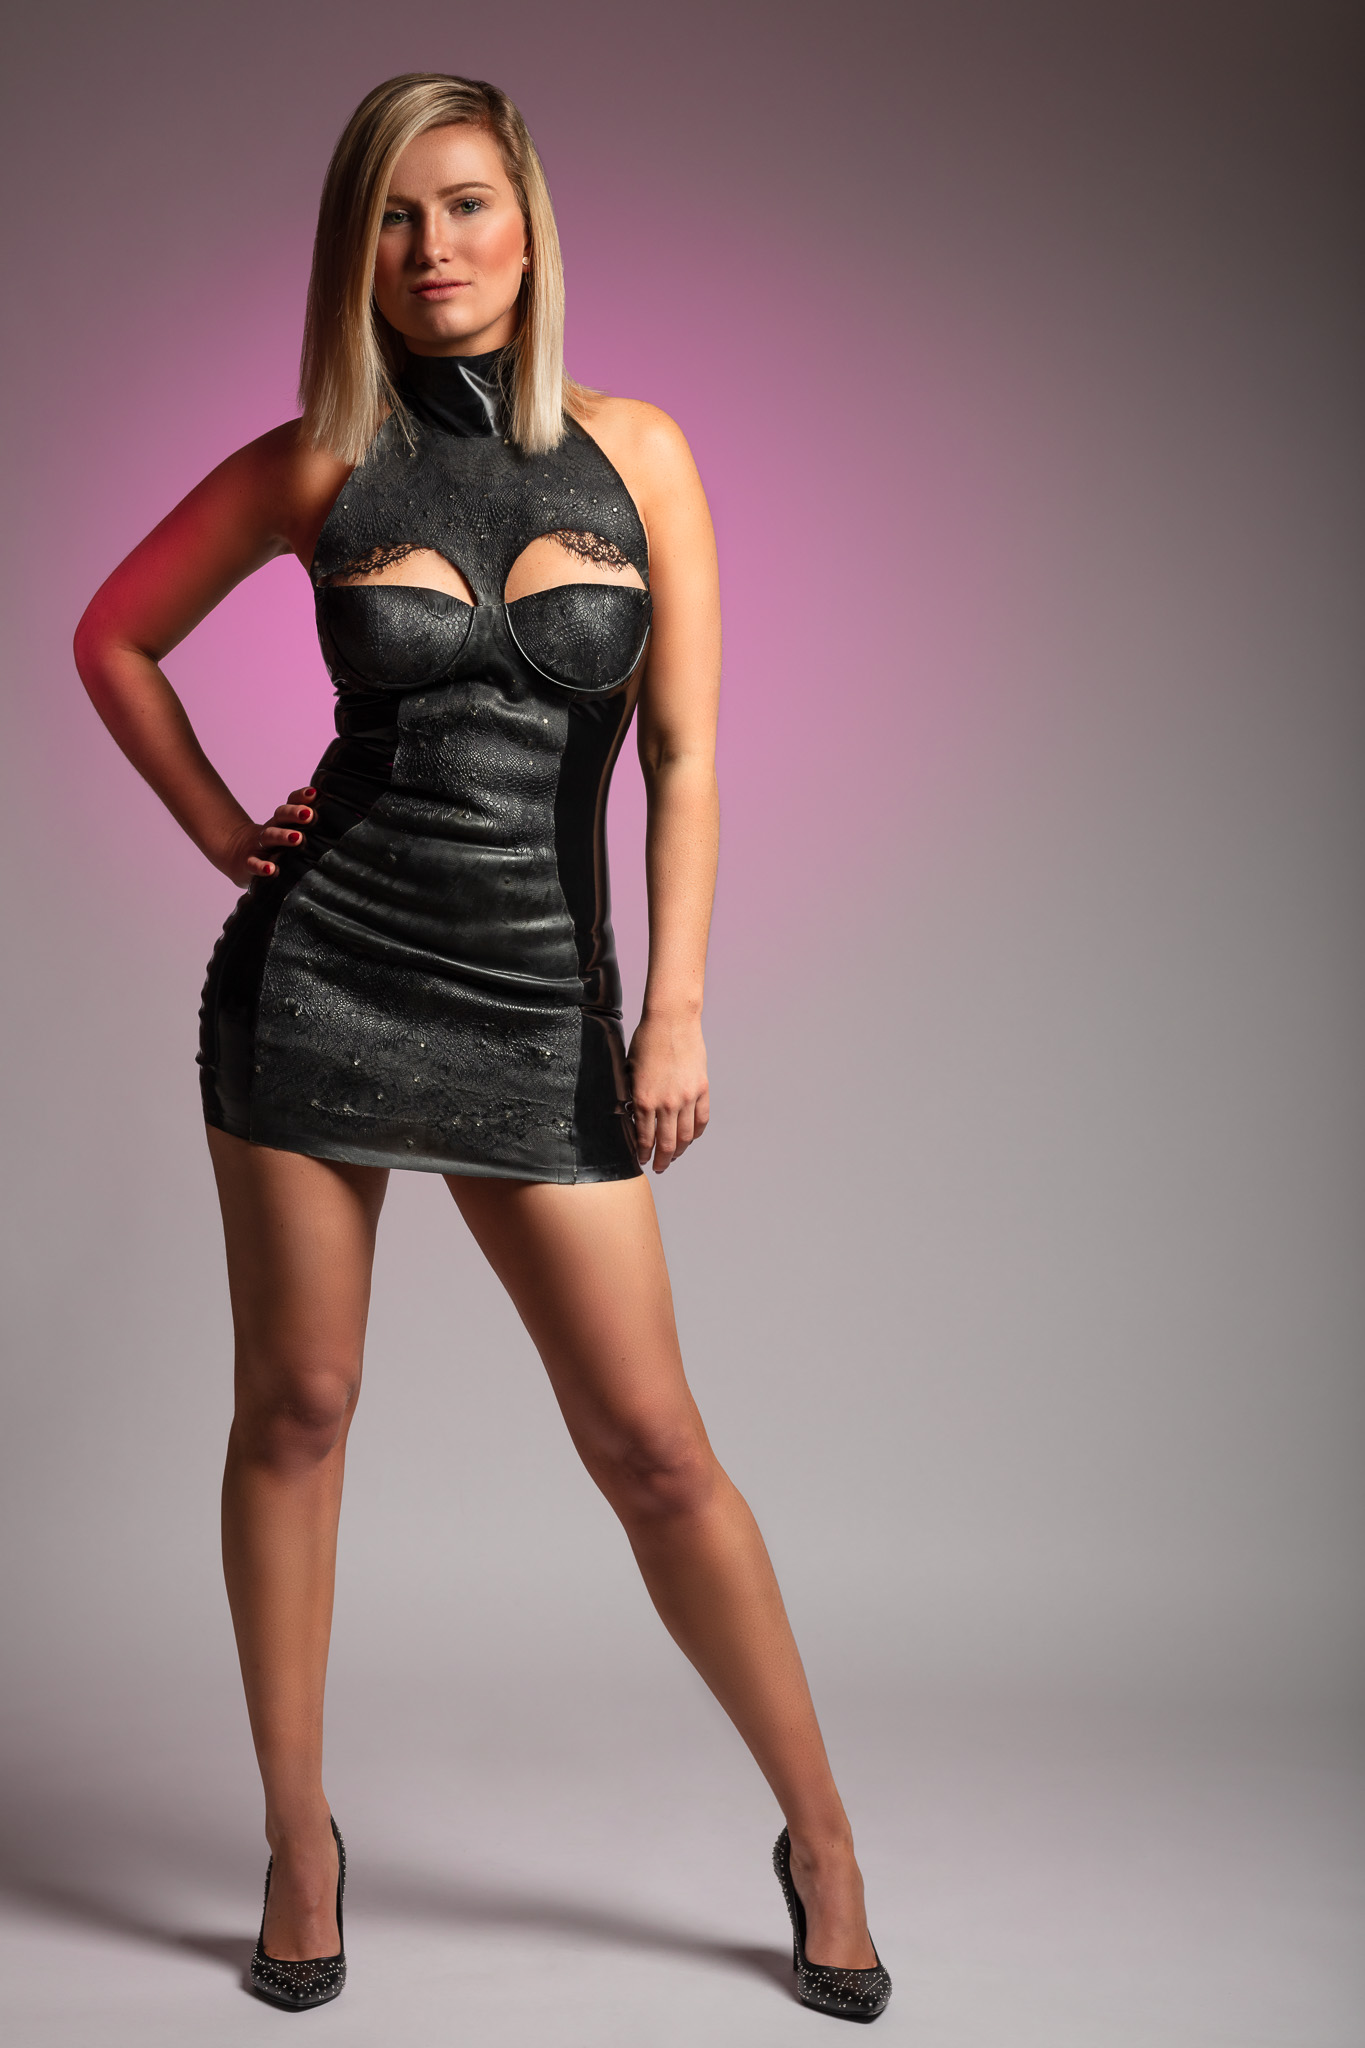 Delphine Wearing a Little Black Dress in Latex by Eustratia